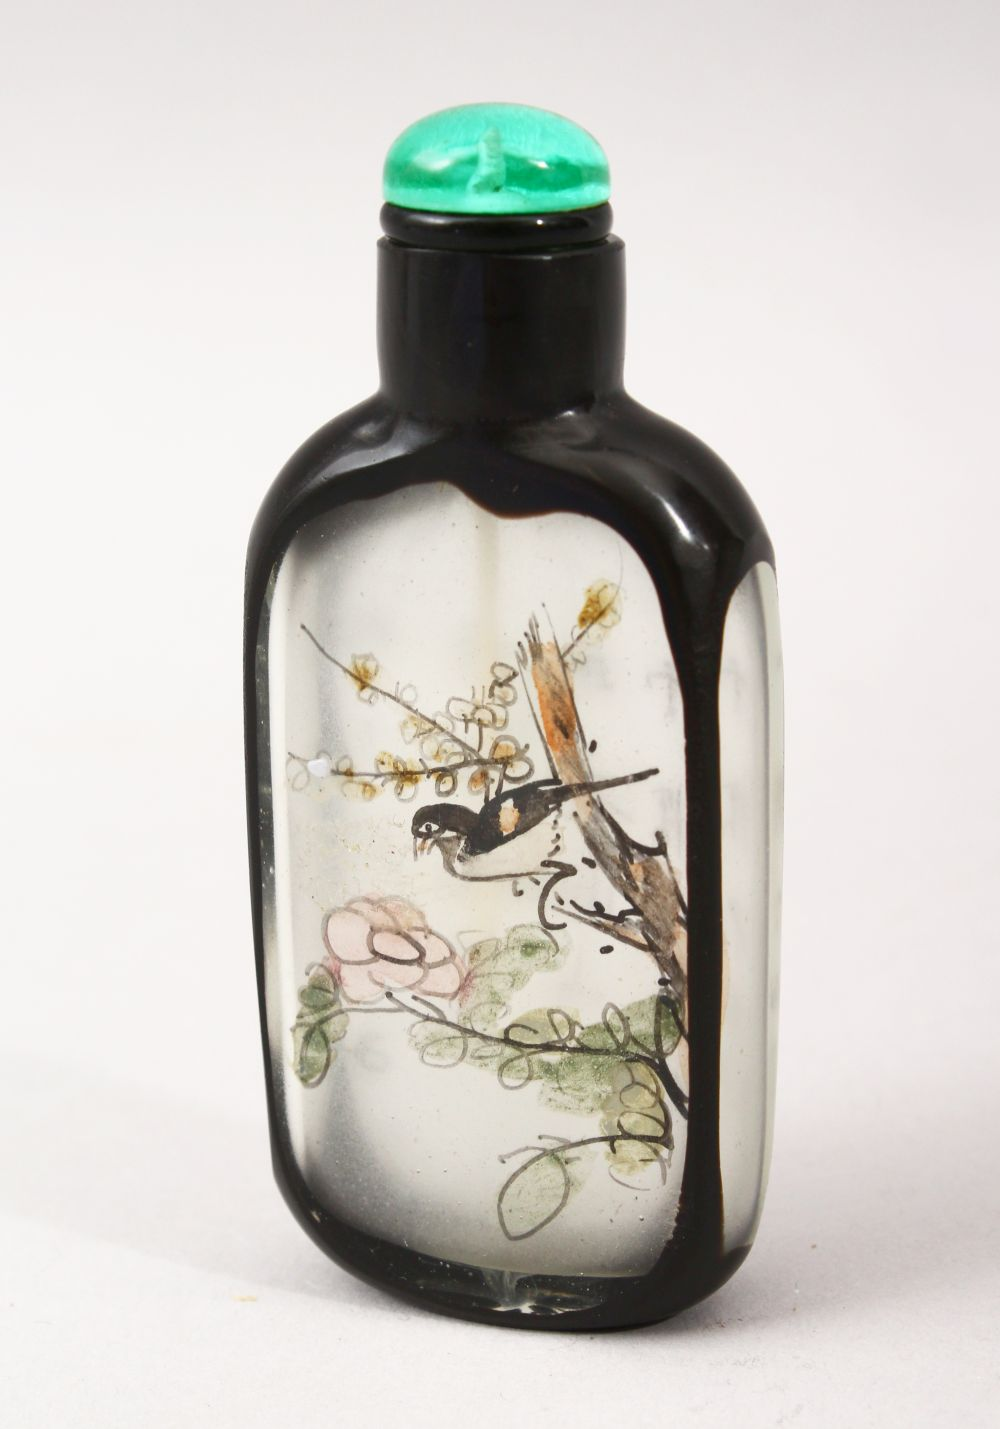 A GOOD 19TH / 20TH CENTURY CHINESE REVERSE PAINTED GLASS & OVERLAY SNUFF BOTTLE, decorated to depict